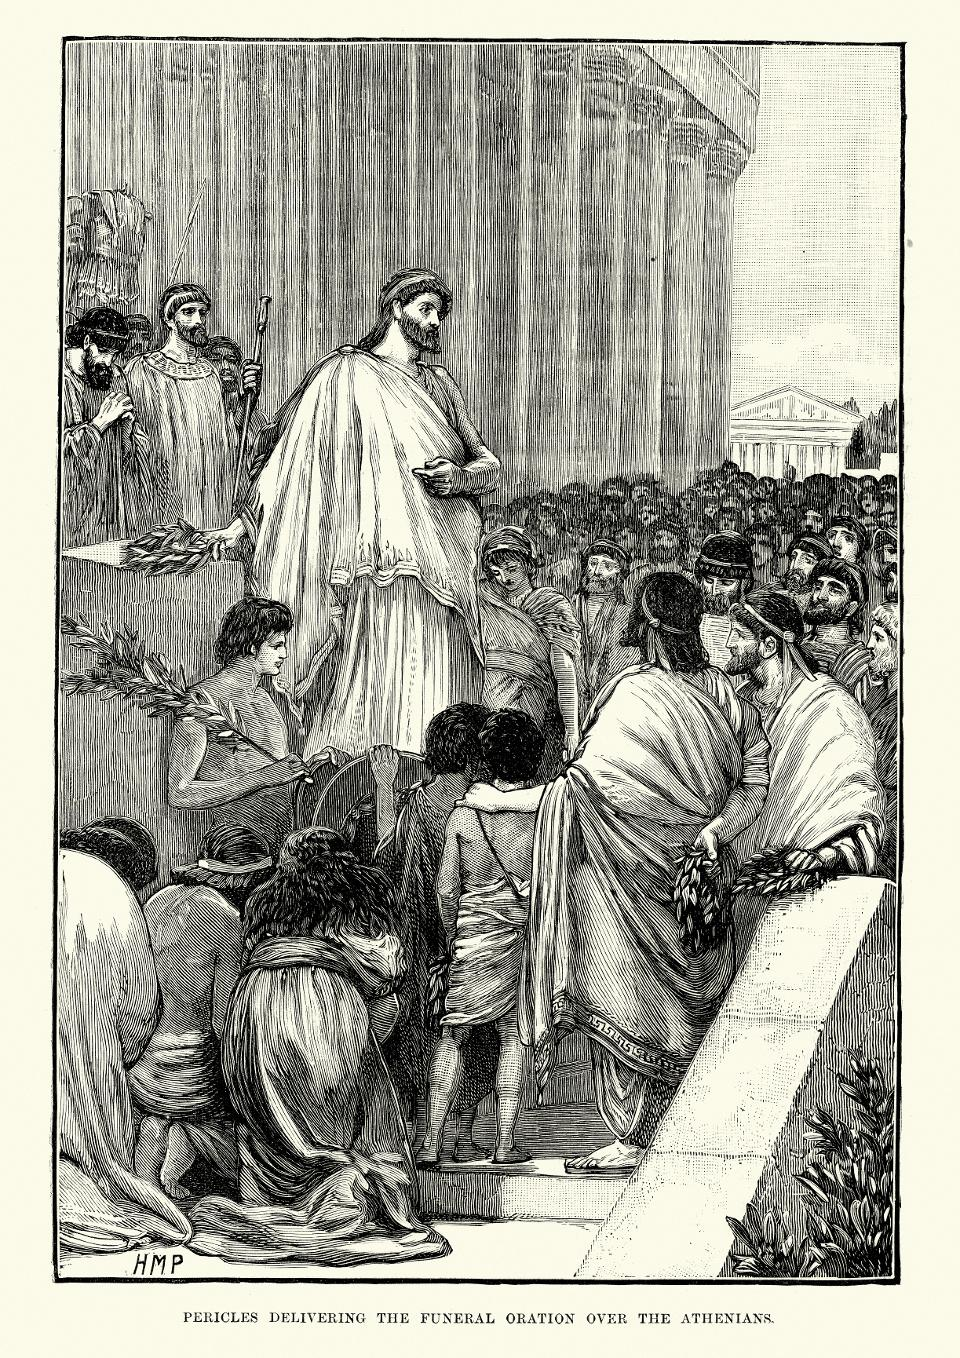 Pericles delivering the funeral oration over Athenians